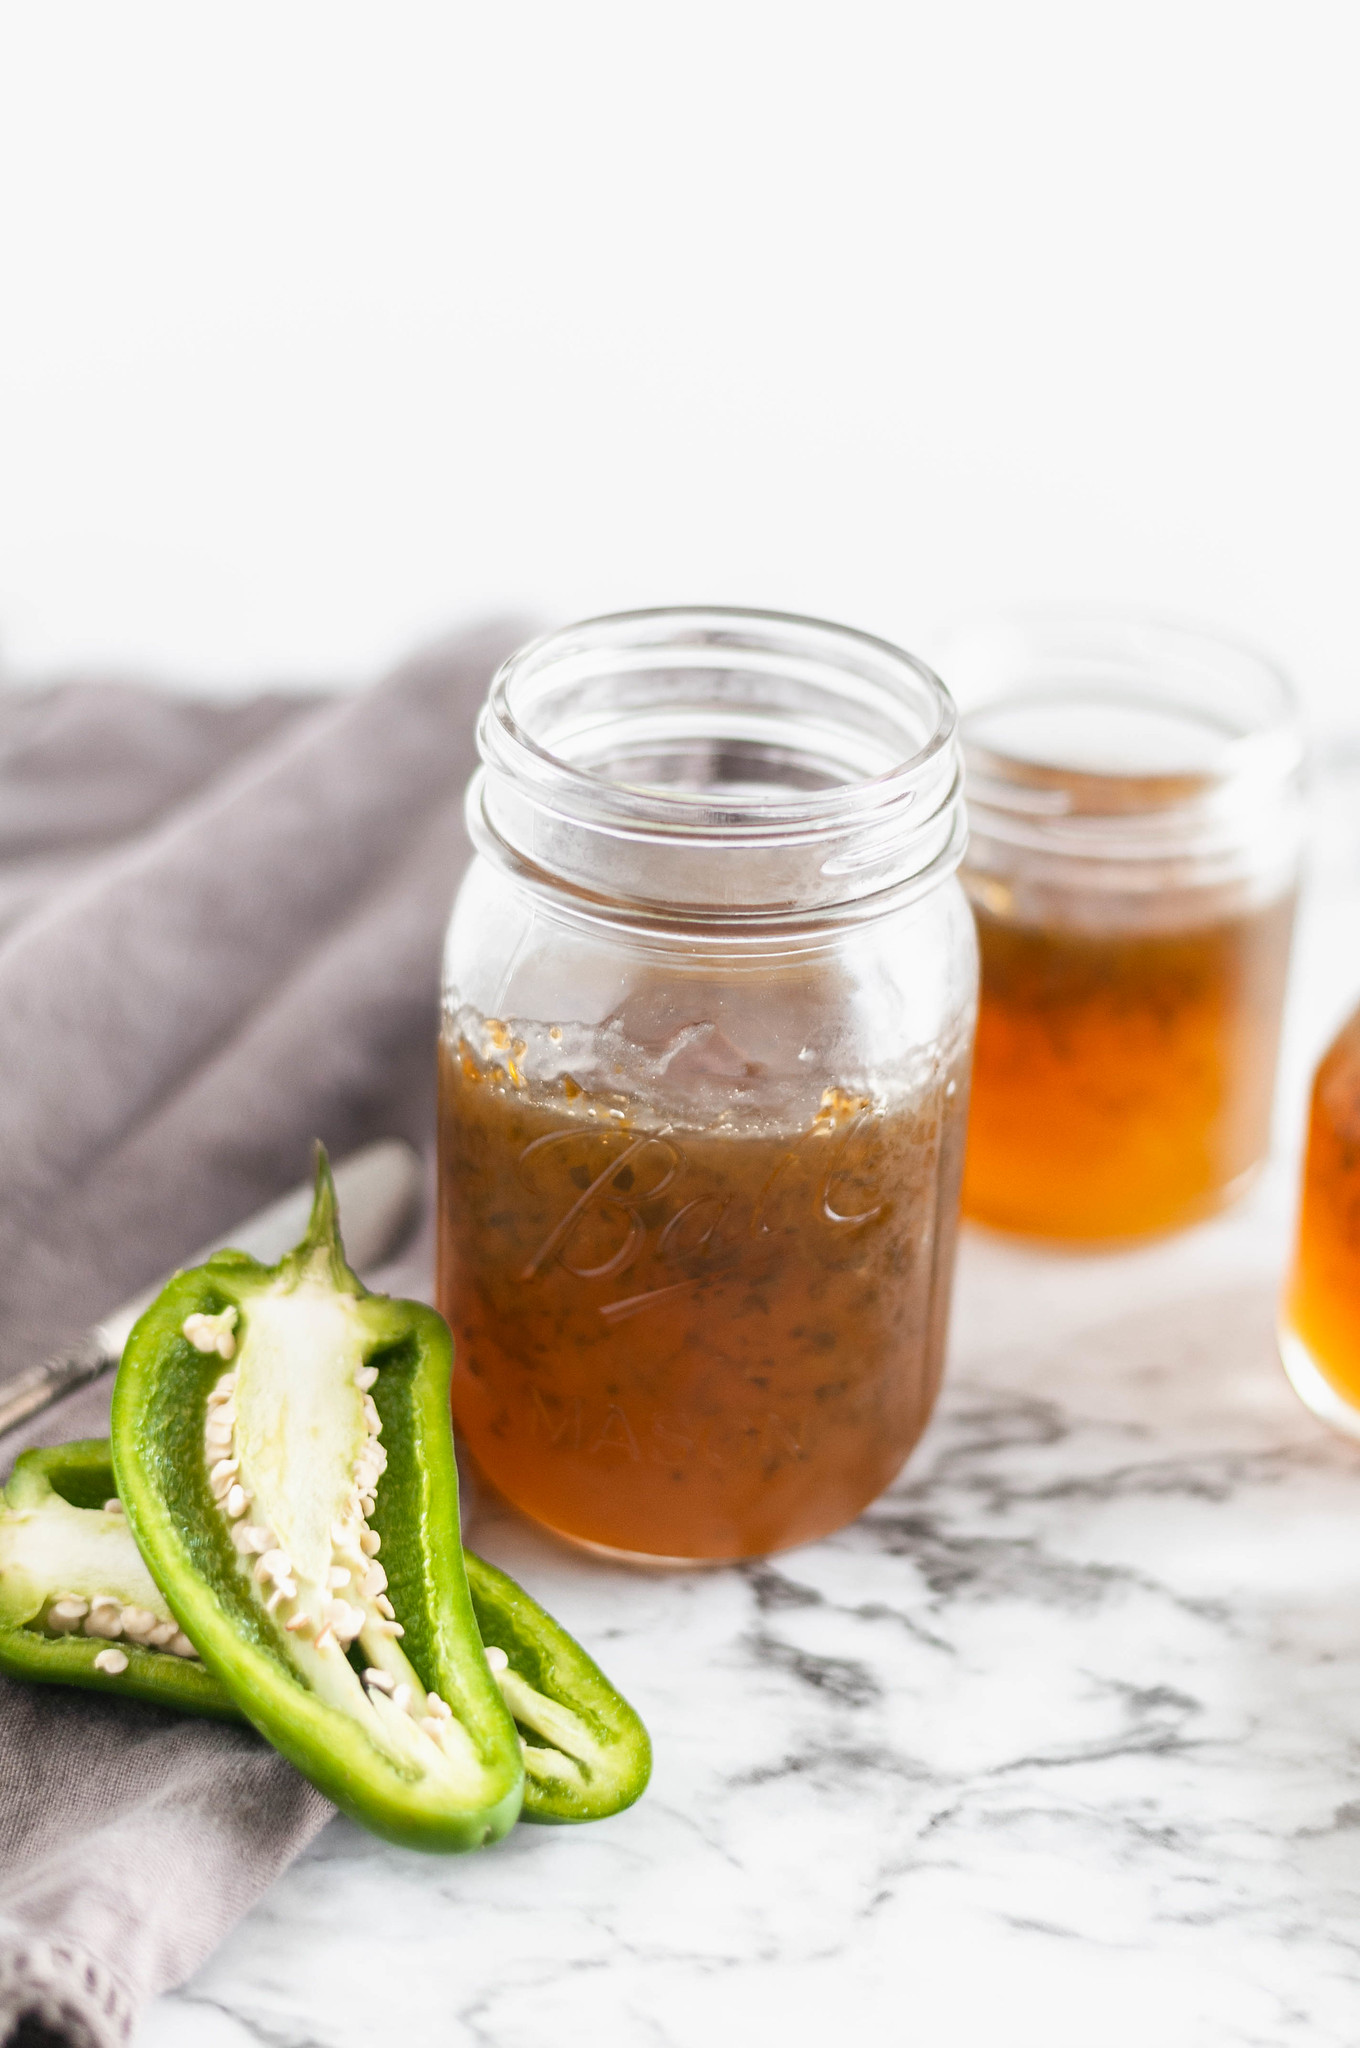 Homemade Jalapeno Jelly is easier than you would think and so delicious on all the things. Slather it on hot cornbread, a juicy burger or use it as a dip.